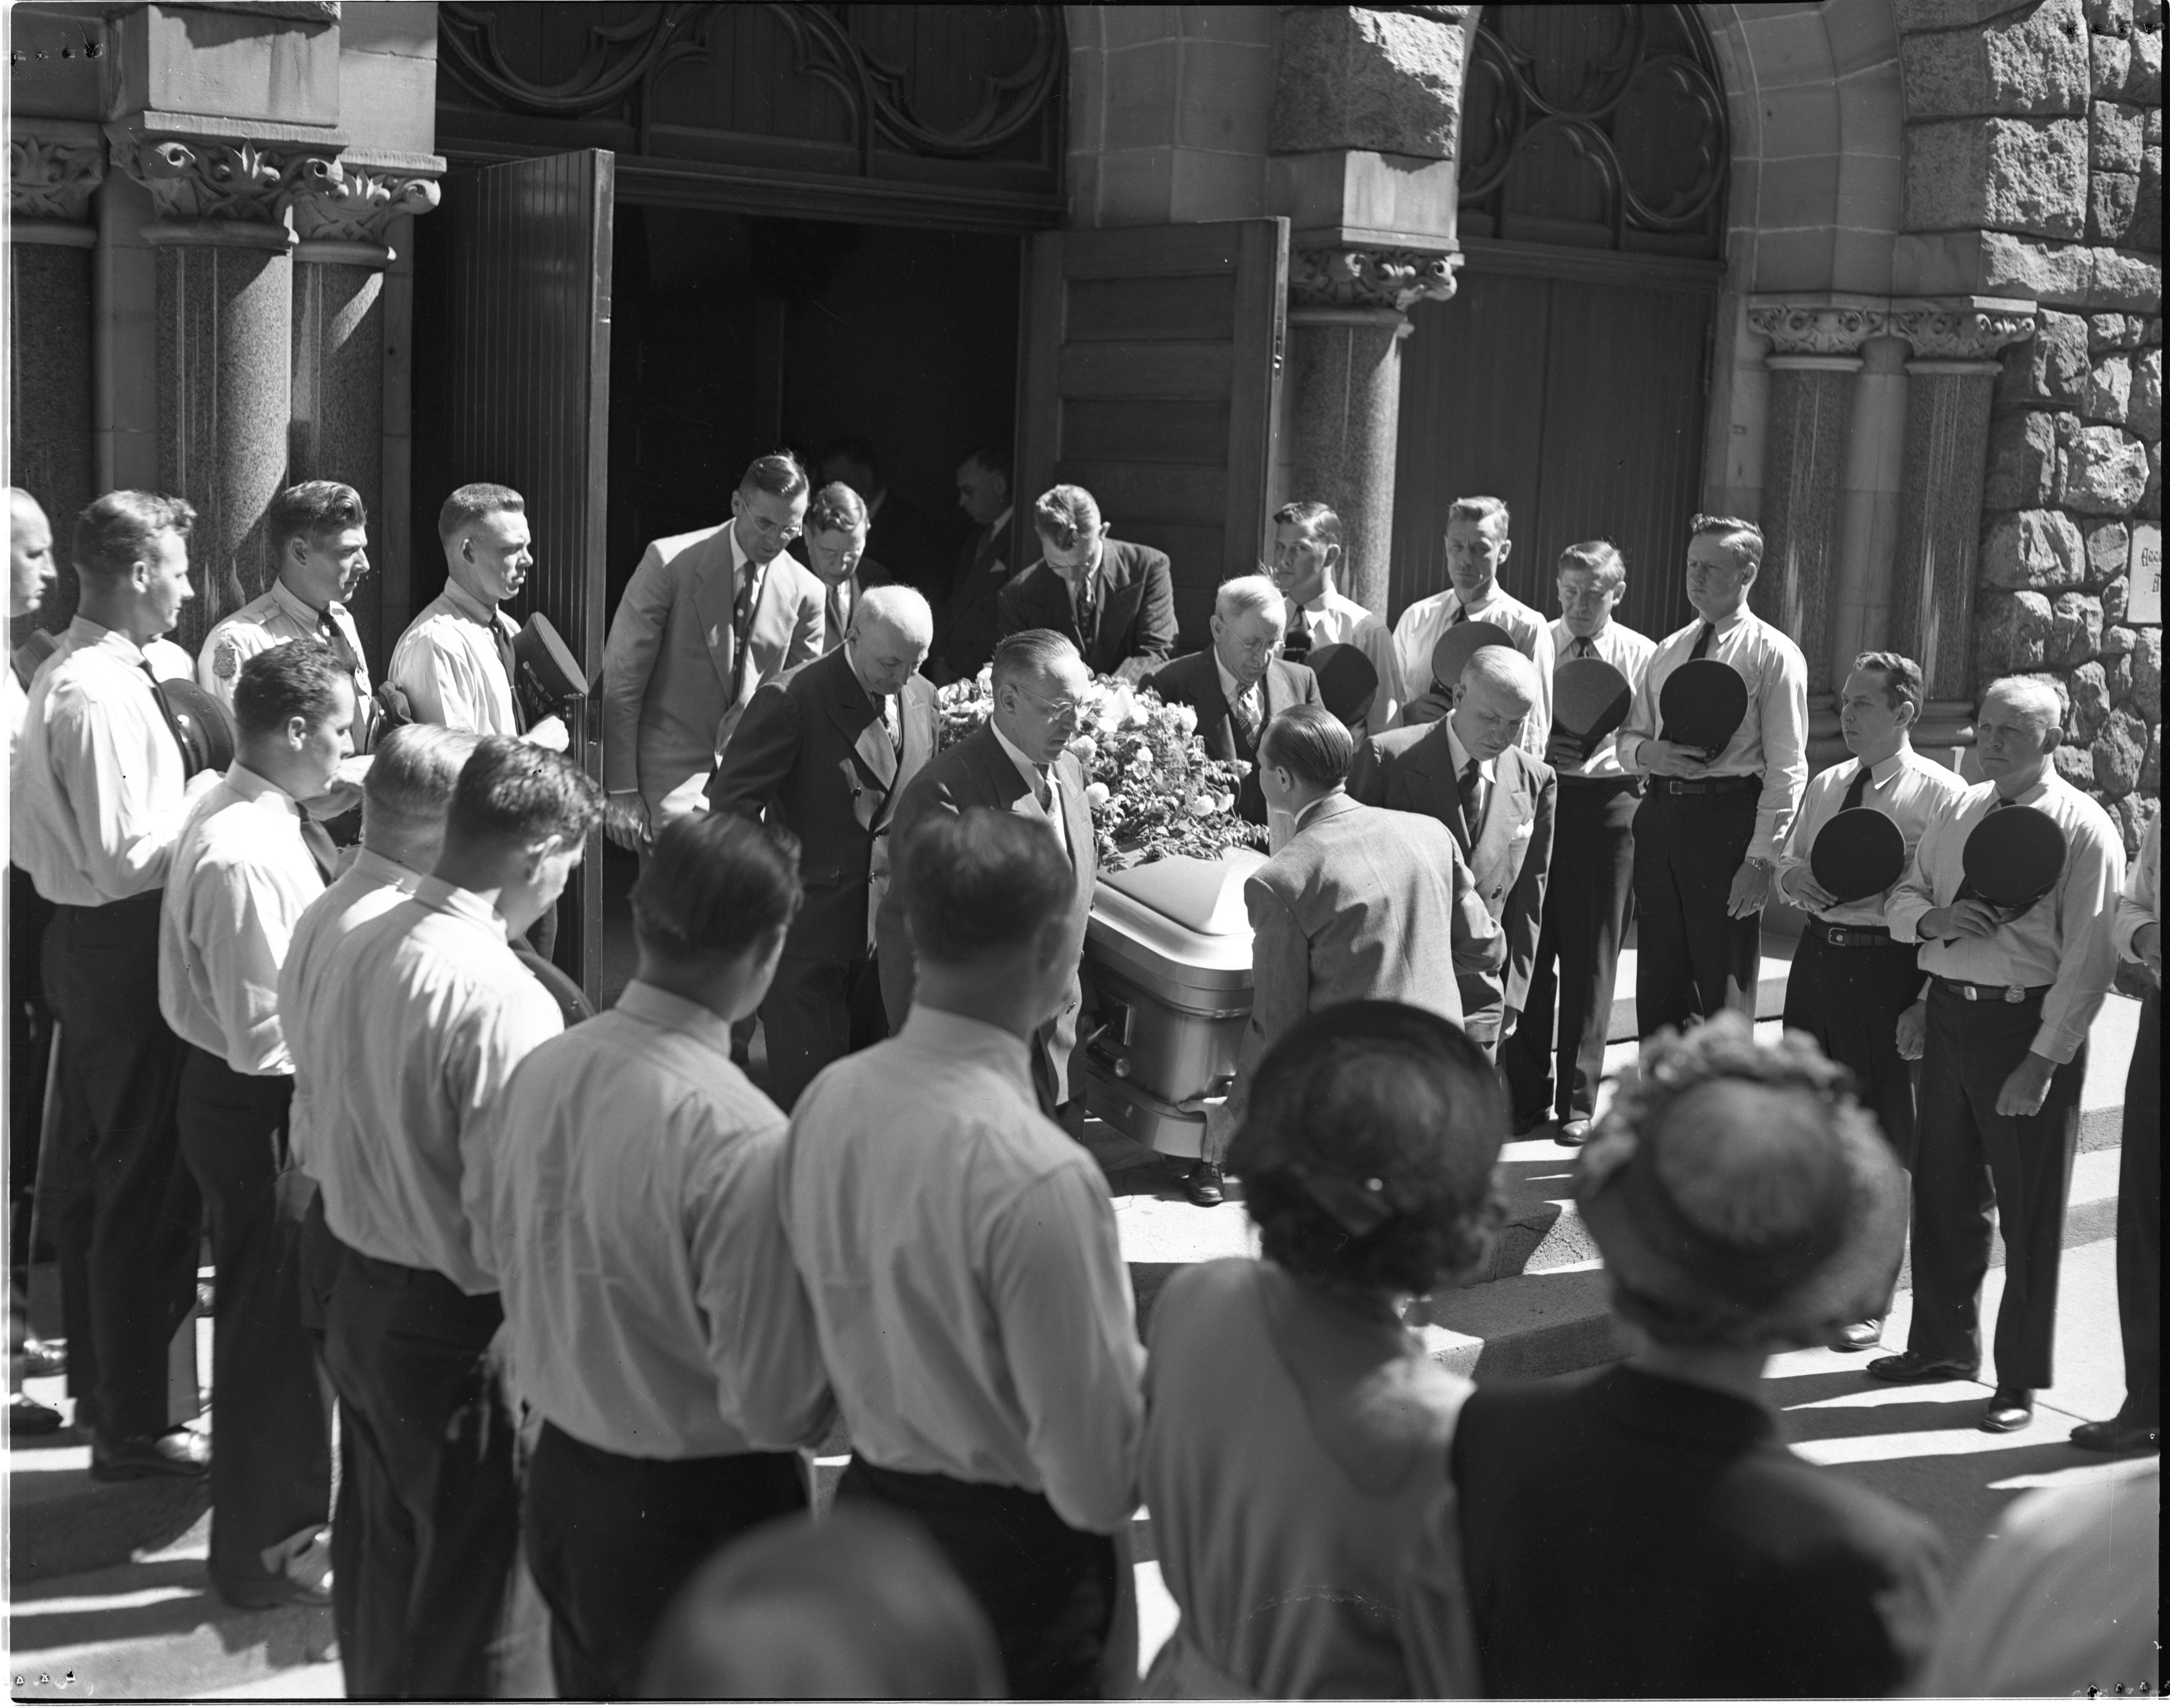 Sgt. Marland 'Red' Howard's Funeral - July 15, 1949 image